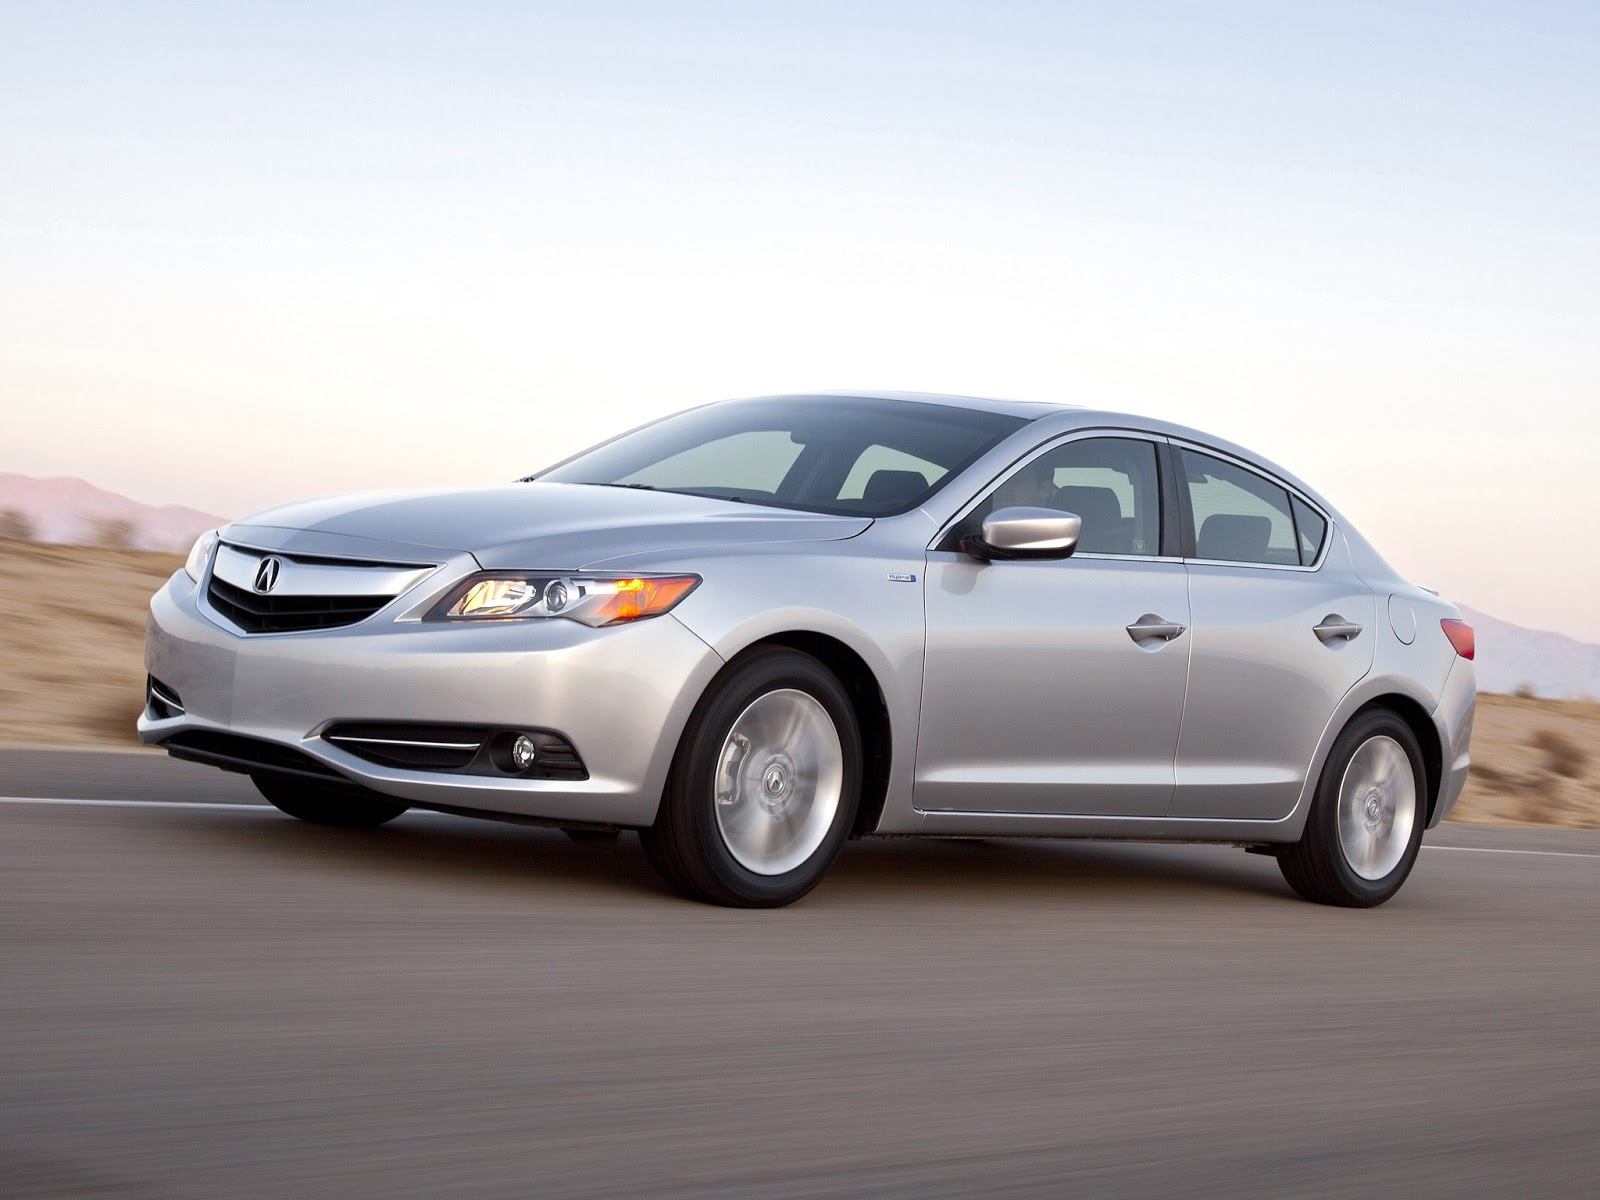 acura ilx hybrid images car hd wallpapers prices review. Black Bedroom Furniture Sets. Home Design Ideas